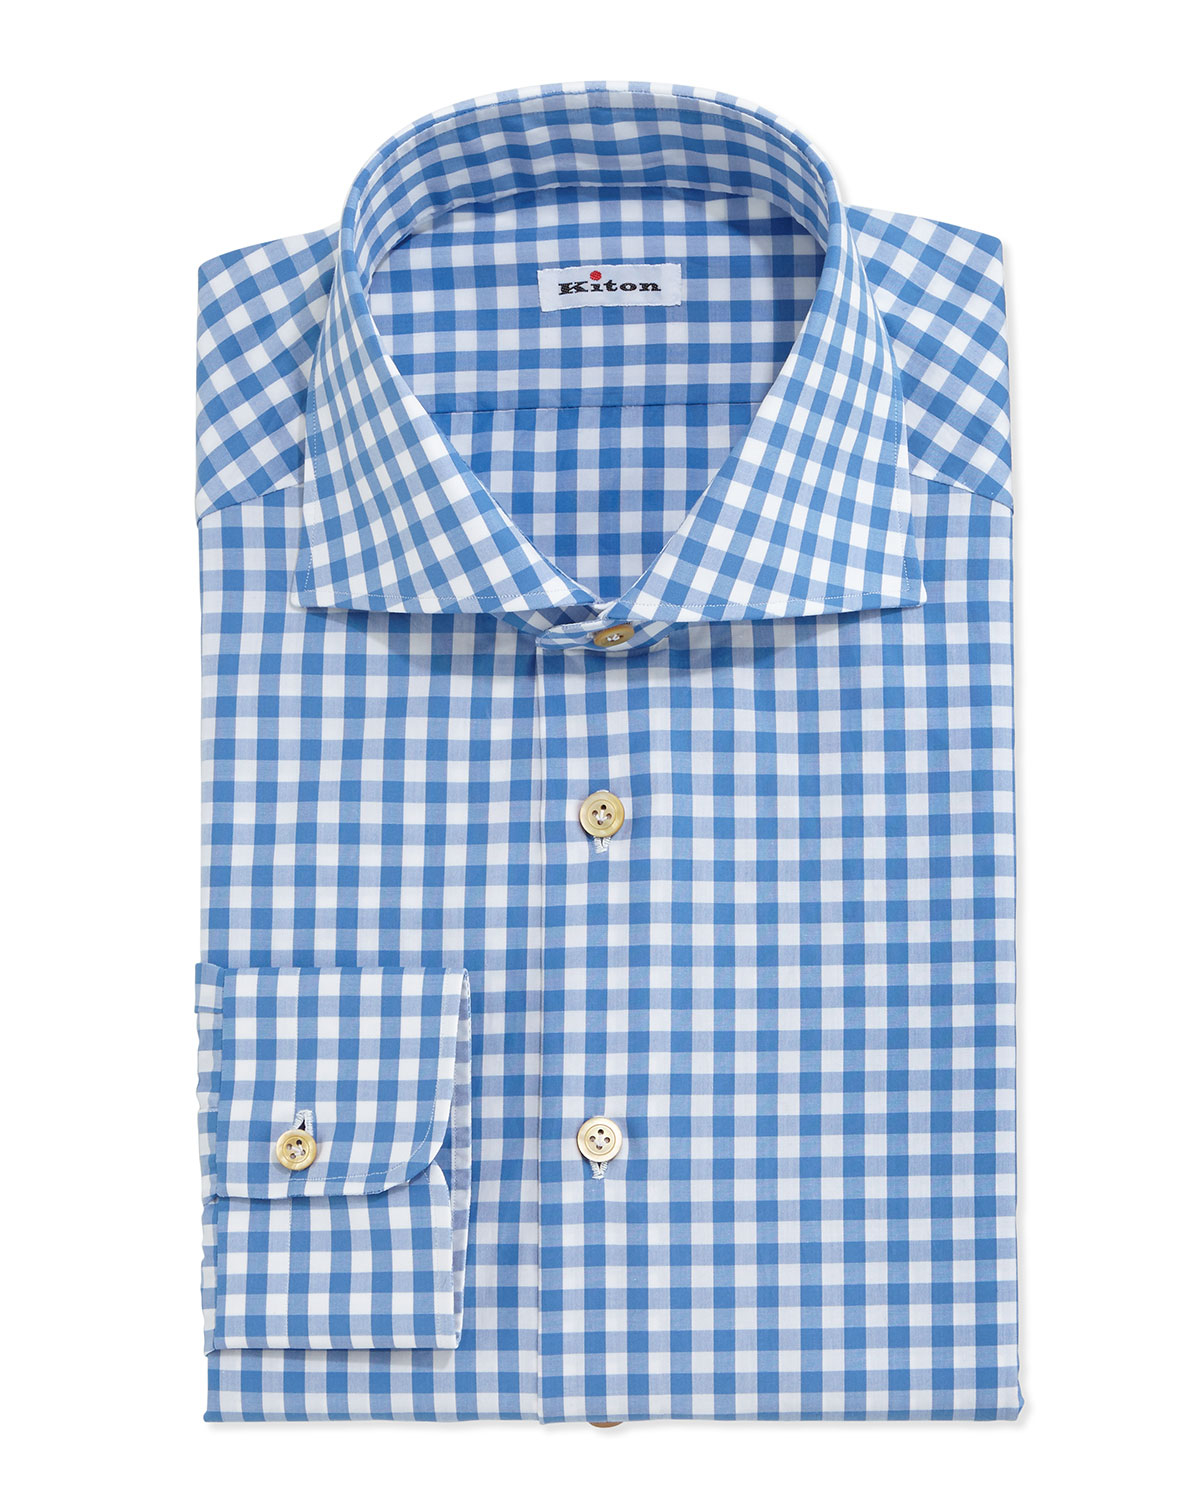 Lyst kiton gingham check dress shirt in blue for men for Blue check dress shirt